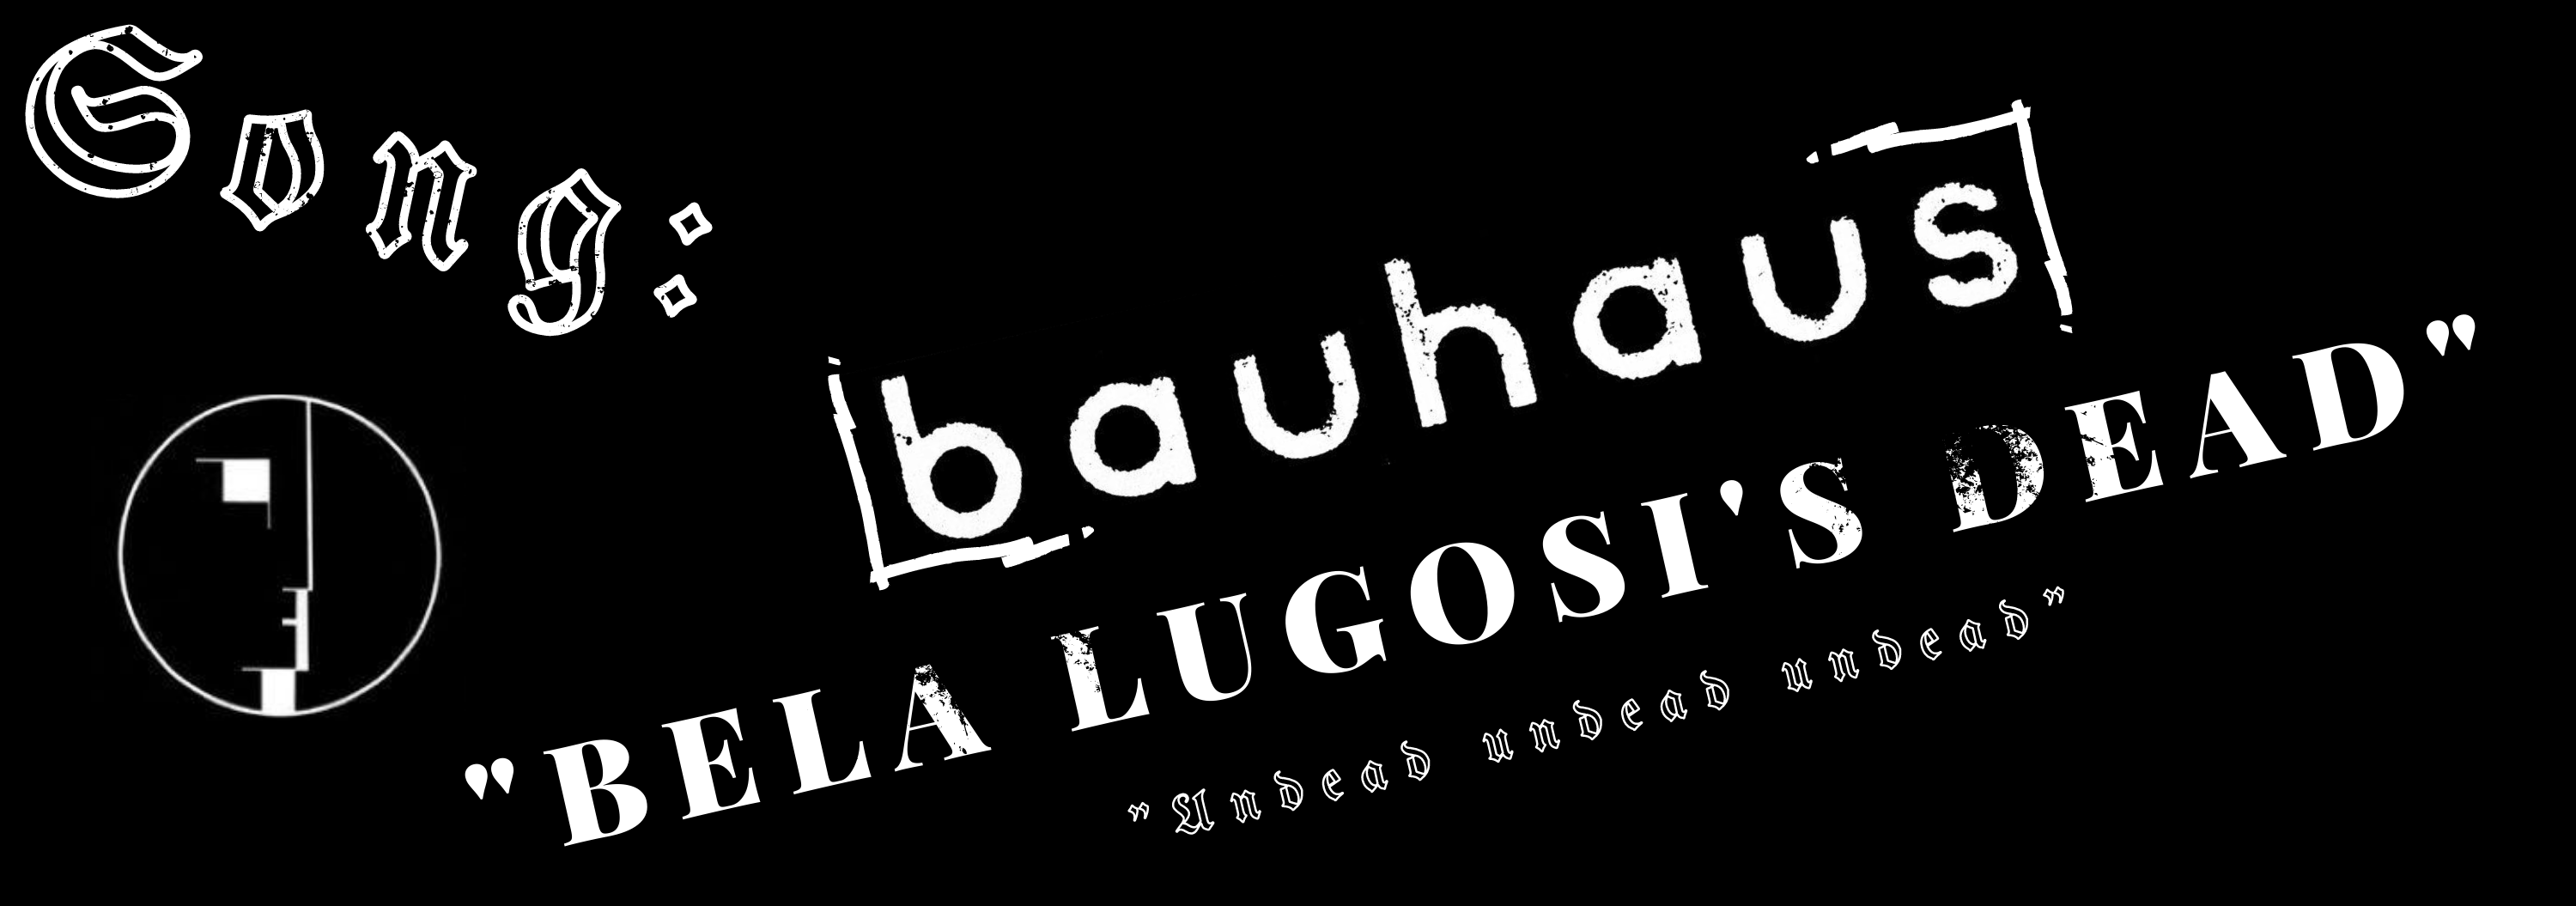 Black and white graphic that says Song, Bauhaus, Bela Lugosi's Dead, and a lyric from Bela Lugosi's Dead, featuring a black and white version of Bauhaus's logo.